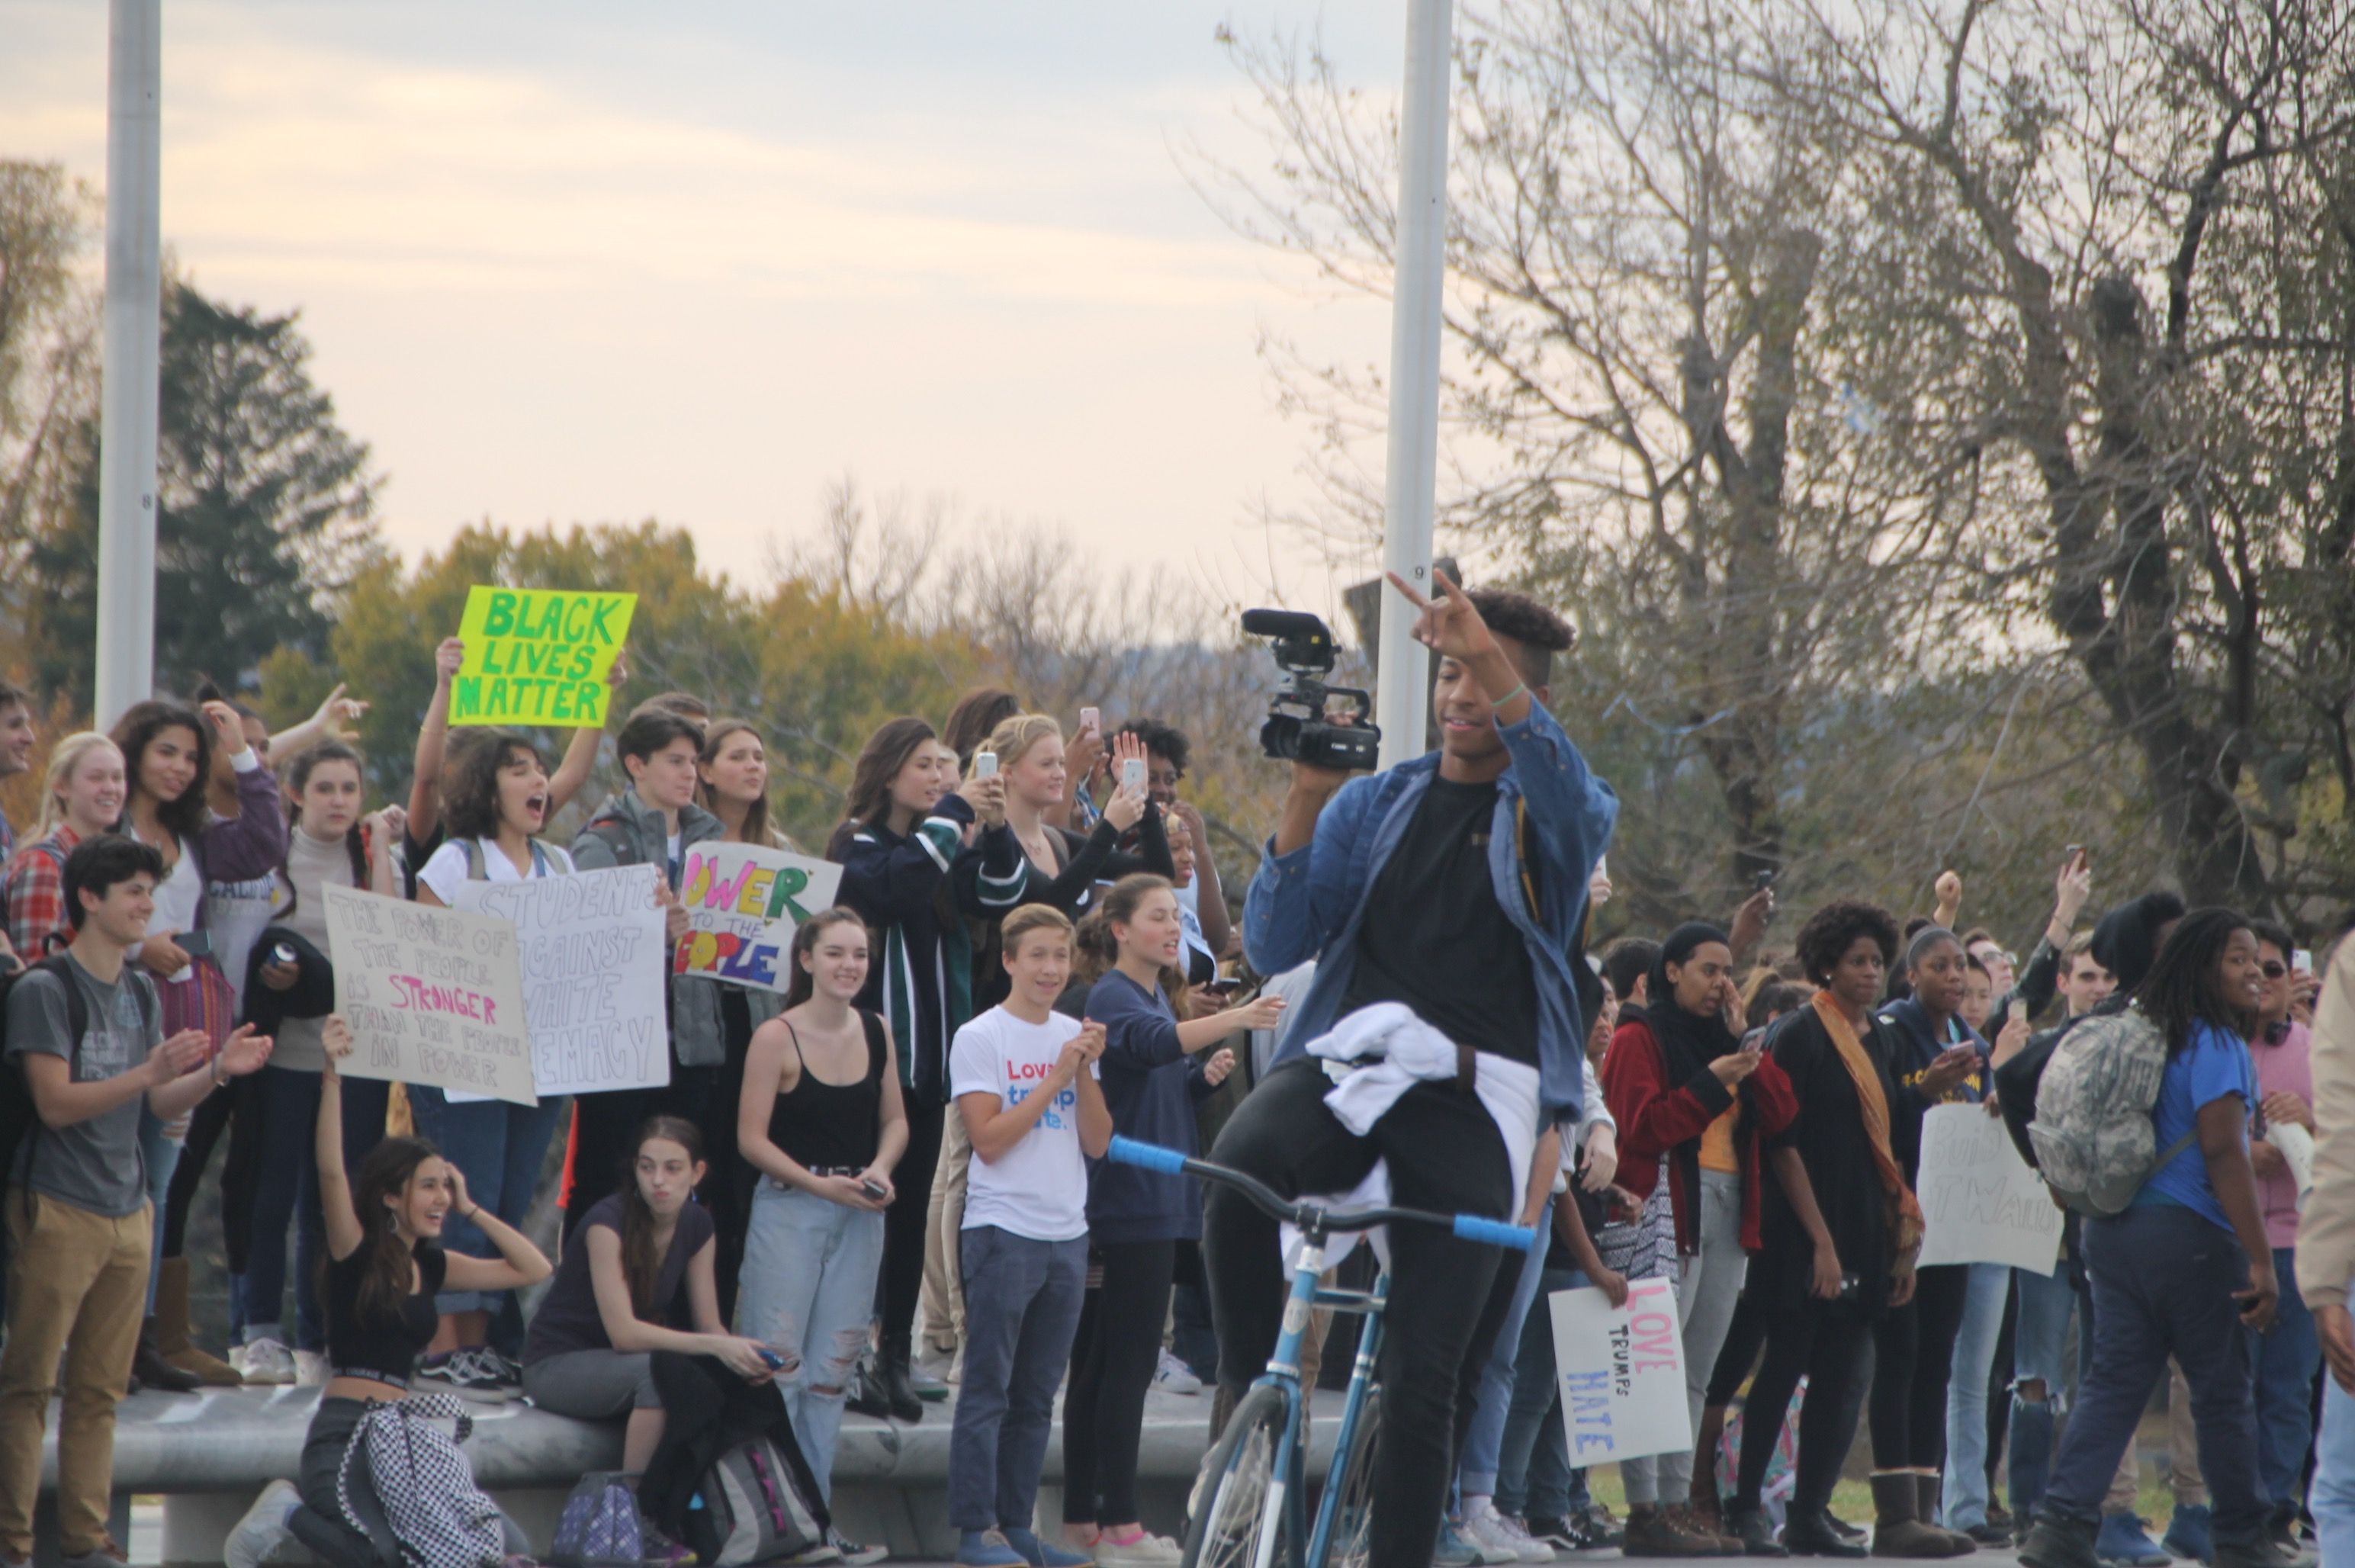 VIDEO: DC youth make their voices heard in peaceful demonstration